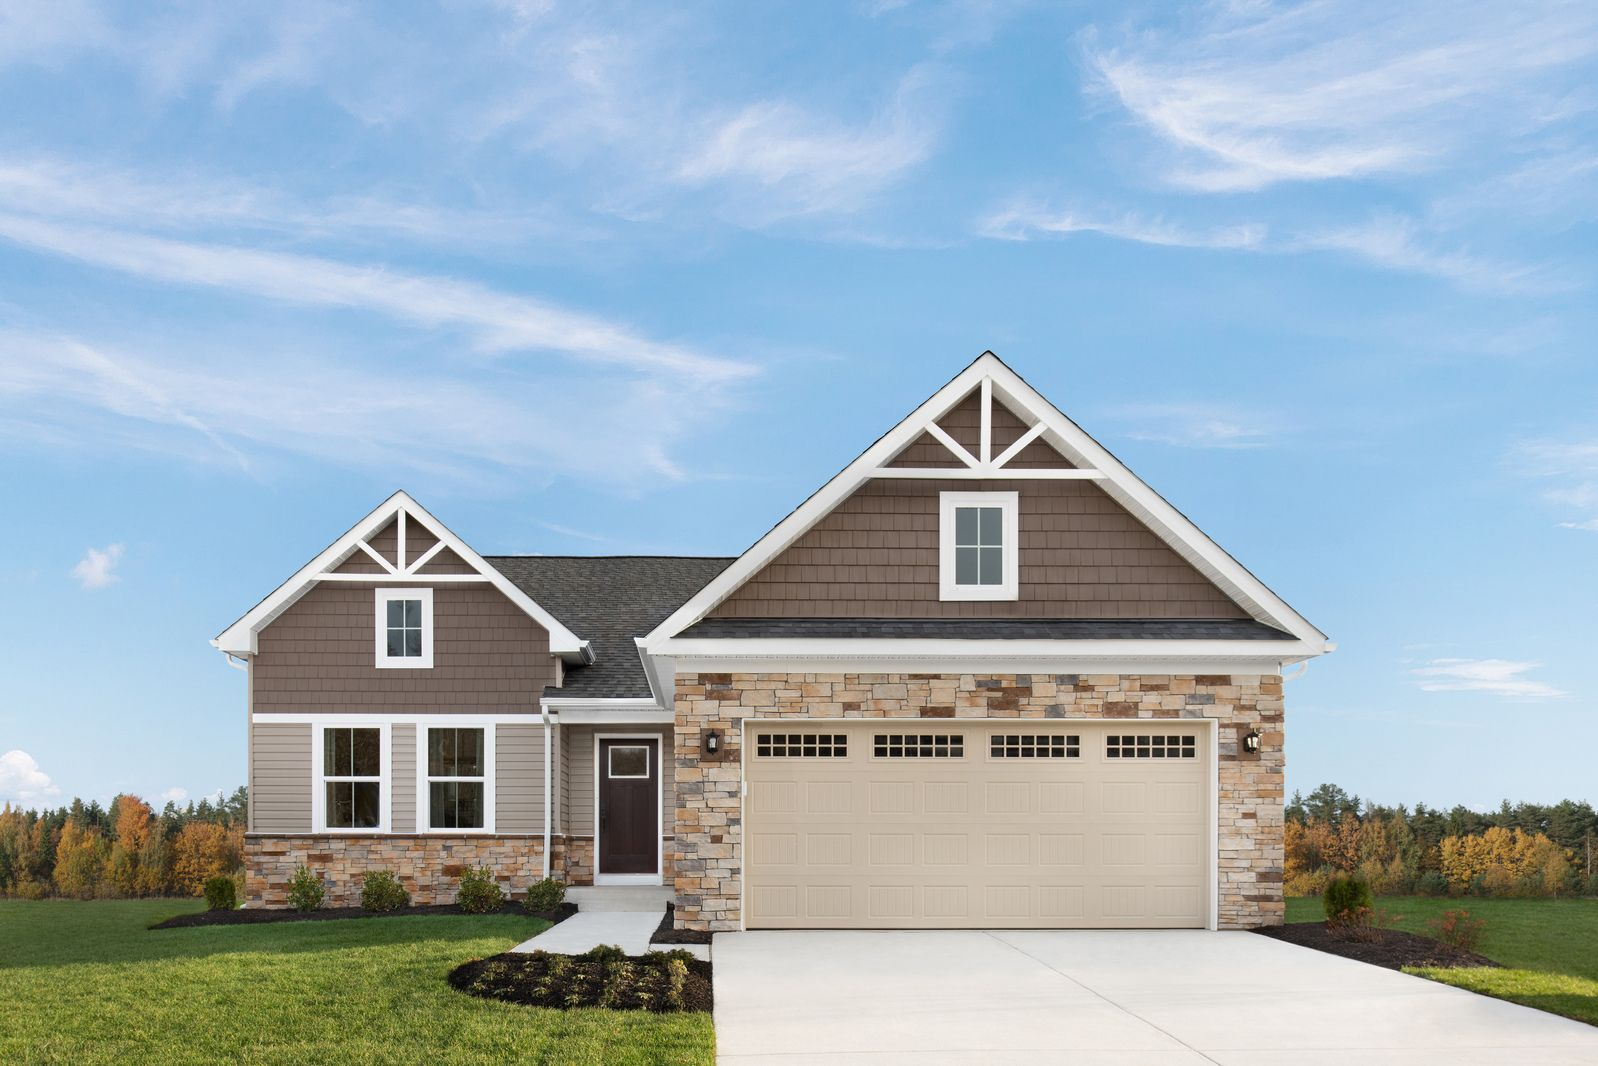 BUILD NEW IN STEPHENS CITY AT NEWTOWN LANDING:Affordable, low maintenance ranch style homes with unfinished basements near everything Stephens City & Winchester has to offer! From the mid $300s.Schedule your visit today!